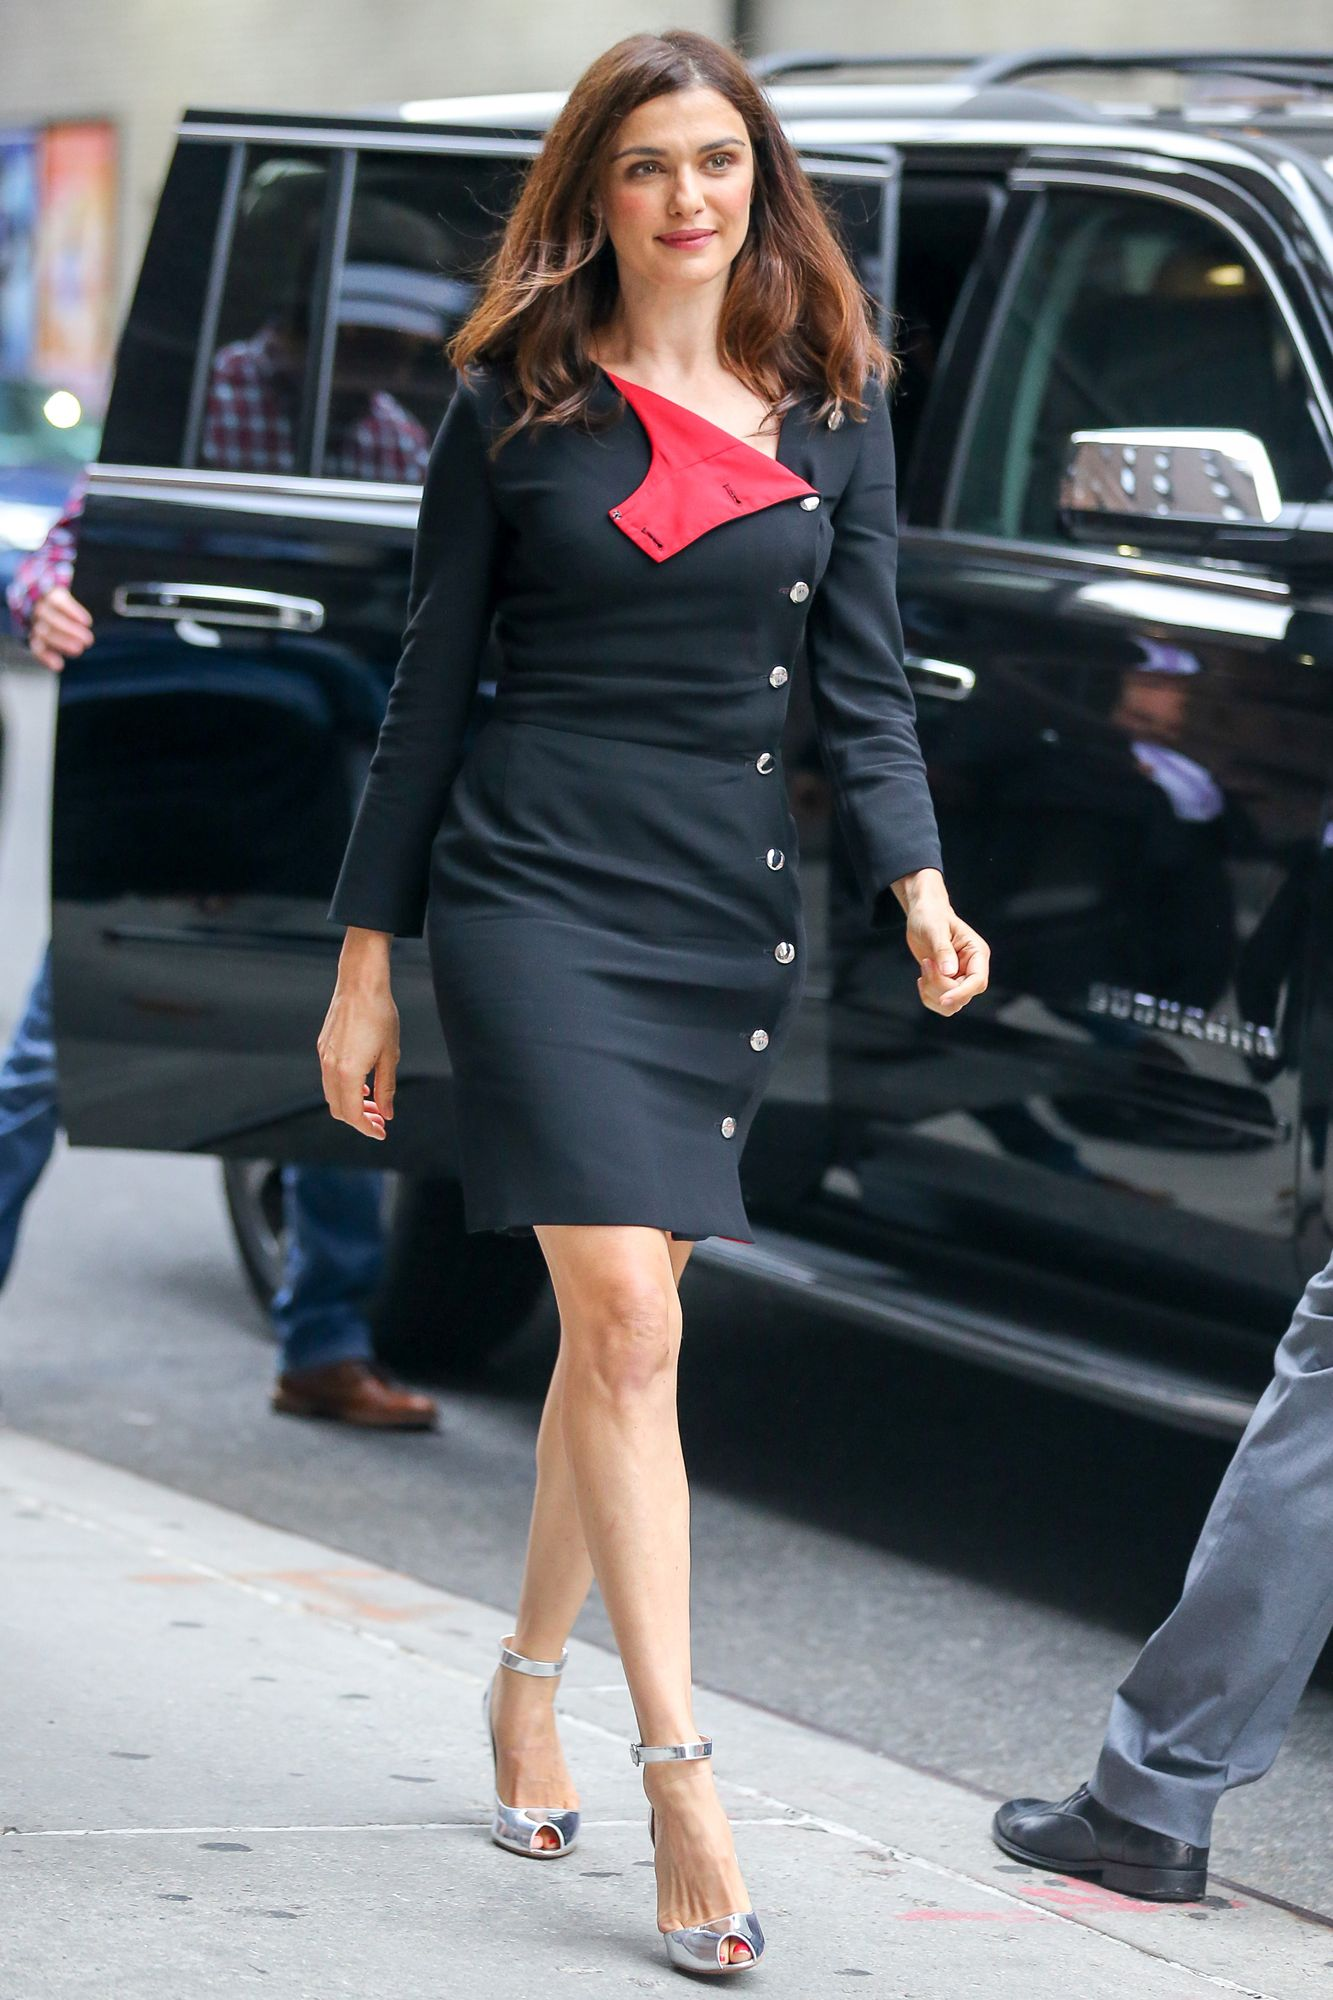 Rachel Weisz Is All Buttoned Up in Her Latest Street Style Look from InStyle.com